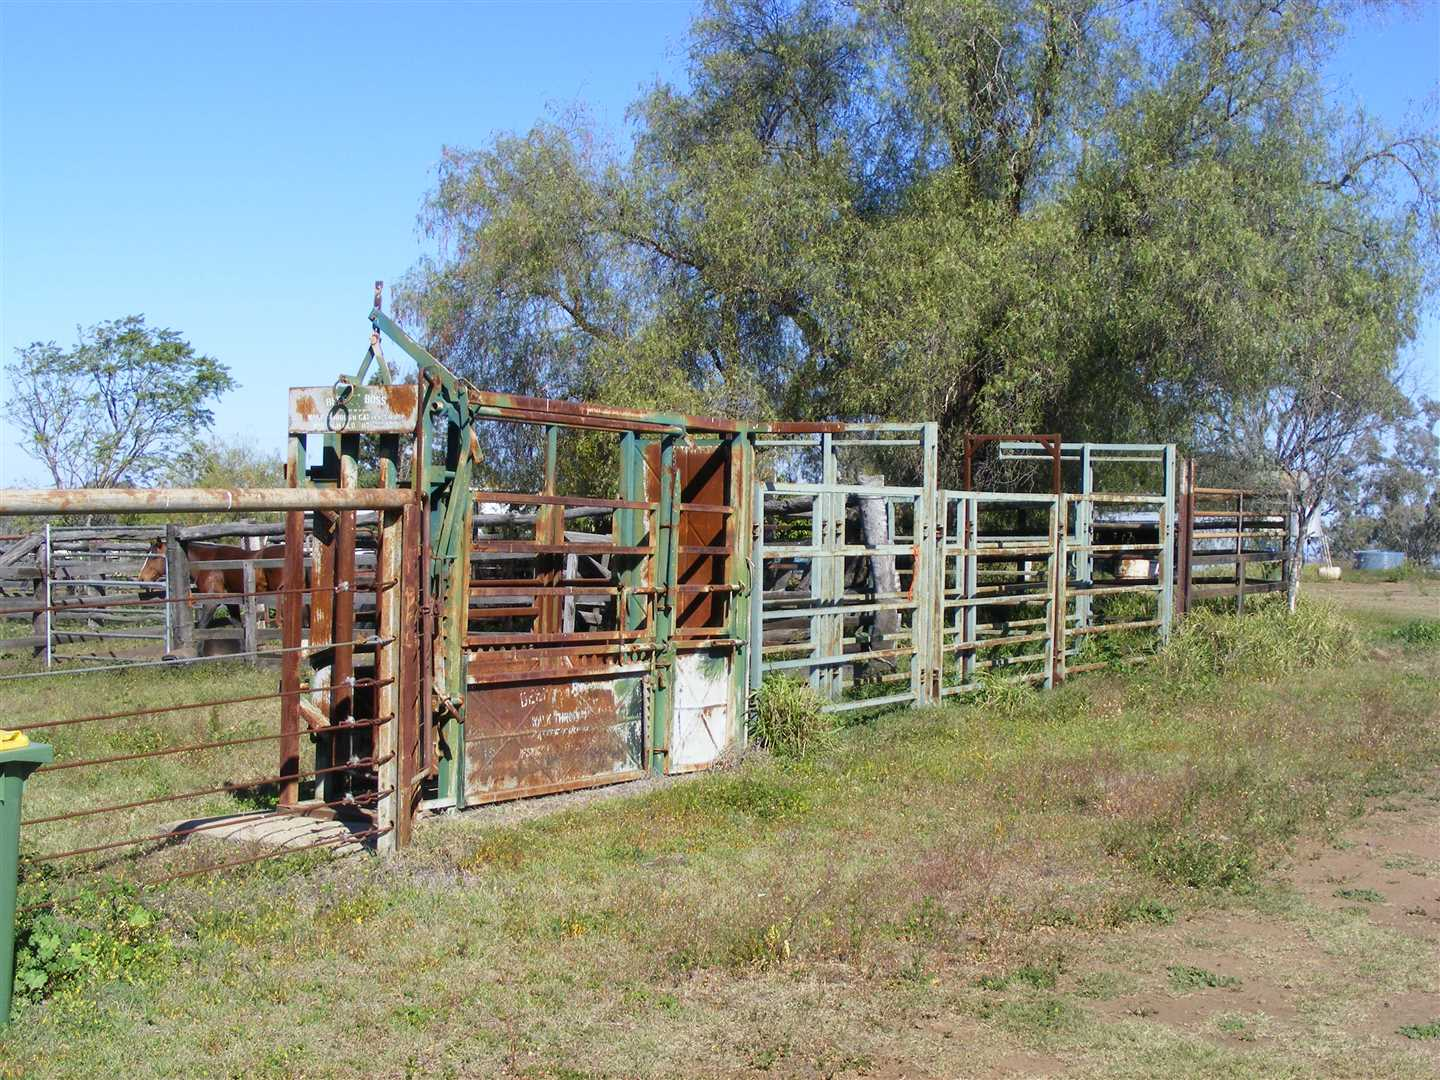 Iron cattle yards, vet crush and race, loading ramp on right of picture.